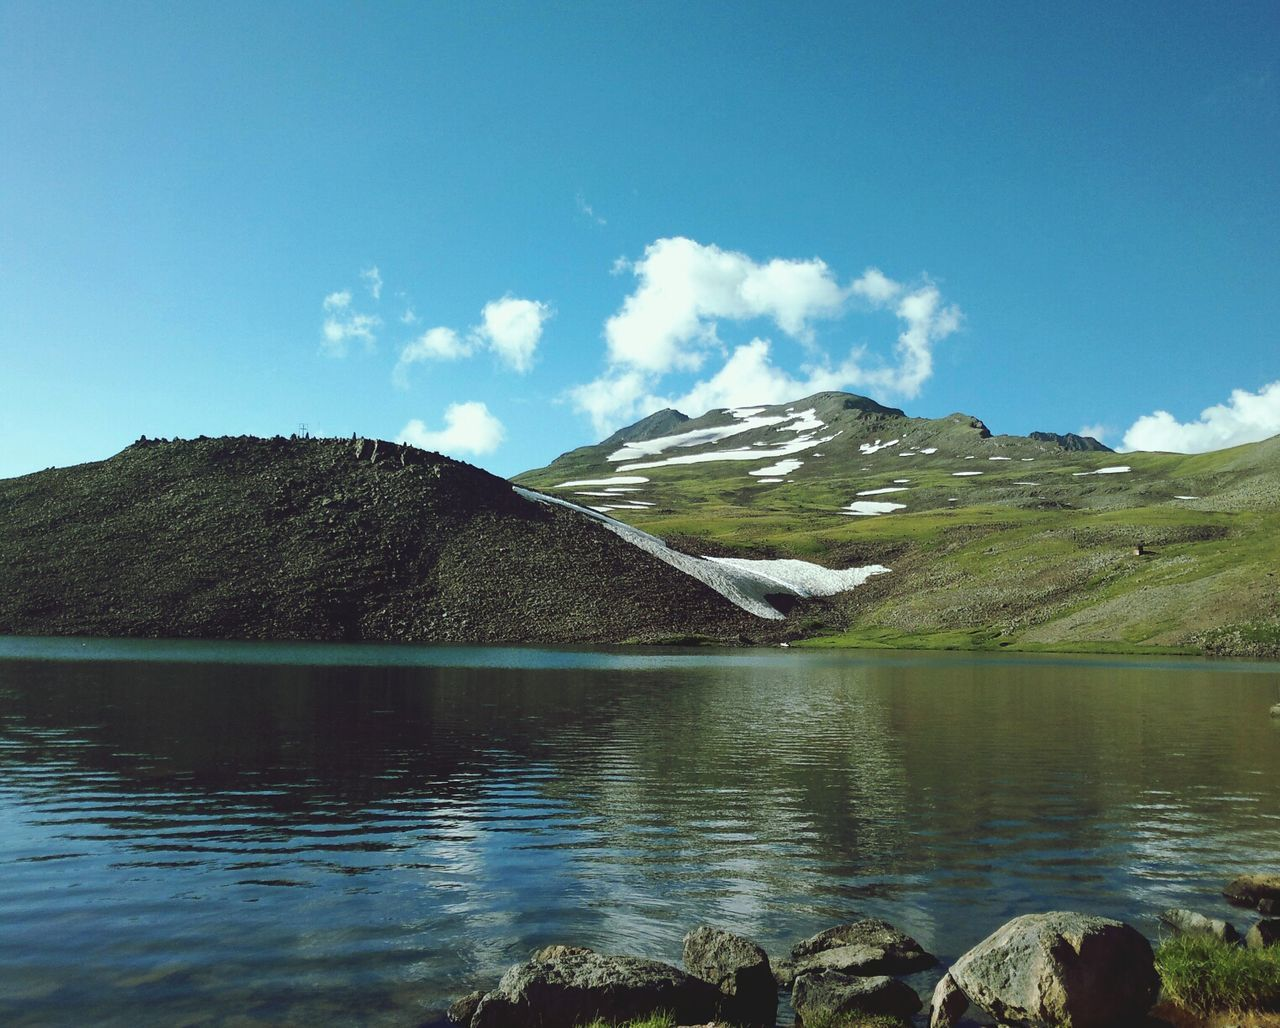 The Environmentalist – 2014 EyeEm Awards Armenia Mount Arakadz Landscape A lake at the top of Mount Arakadz in Armenia!